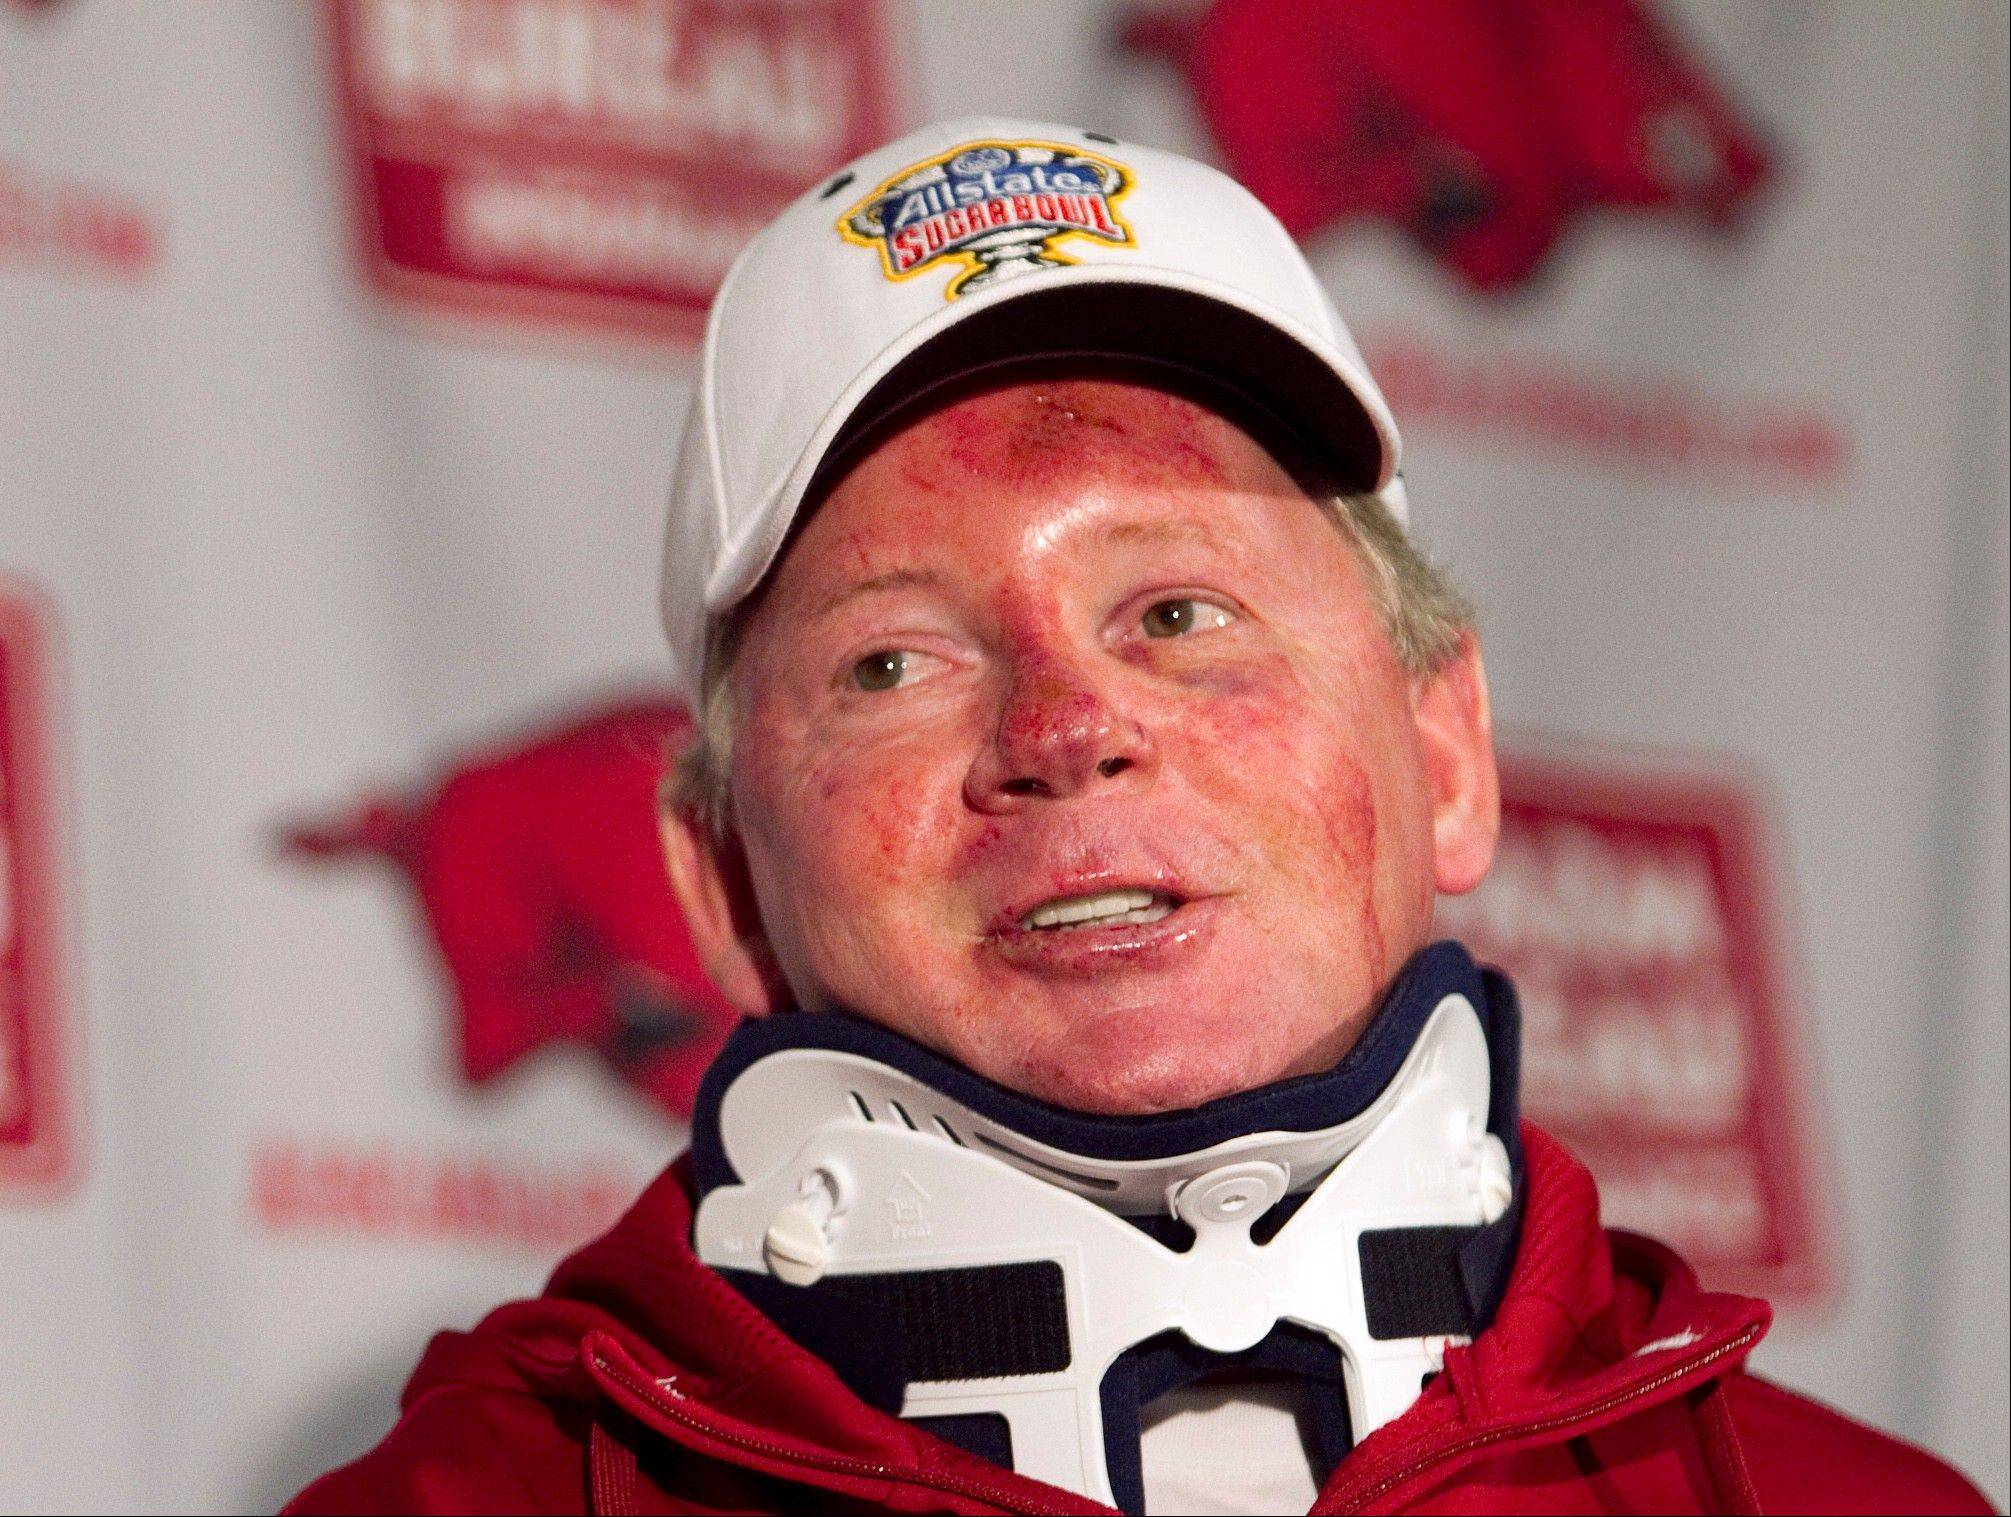 Bobby Petrino was fired by Arkansas for a �pattern of misleading� behavior after he was hurt in a motorcycle accident with his mistress as a passenger.